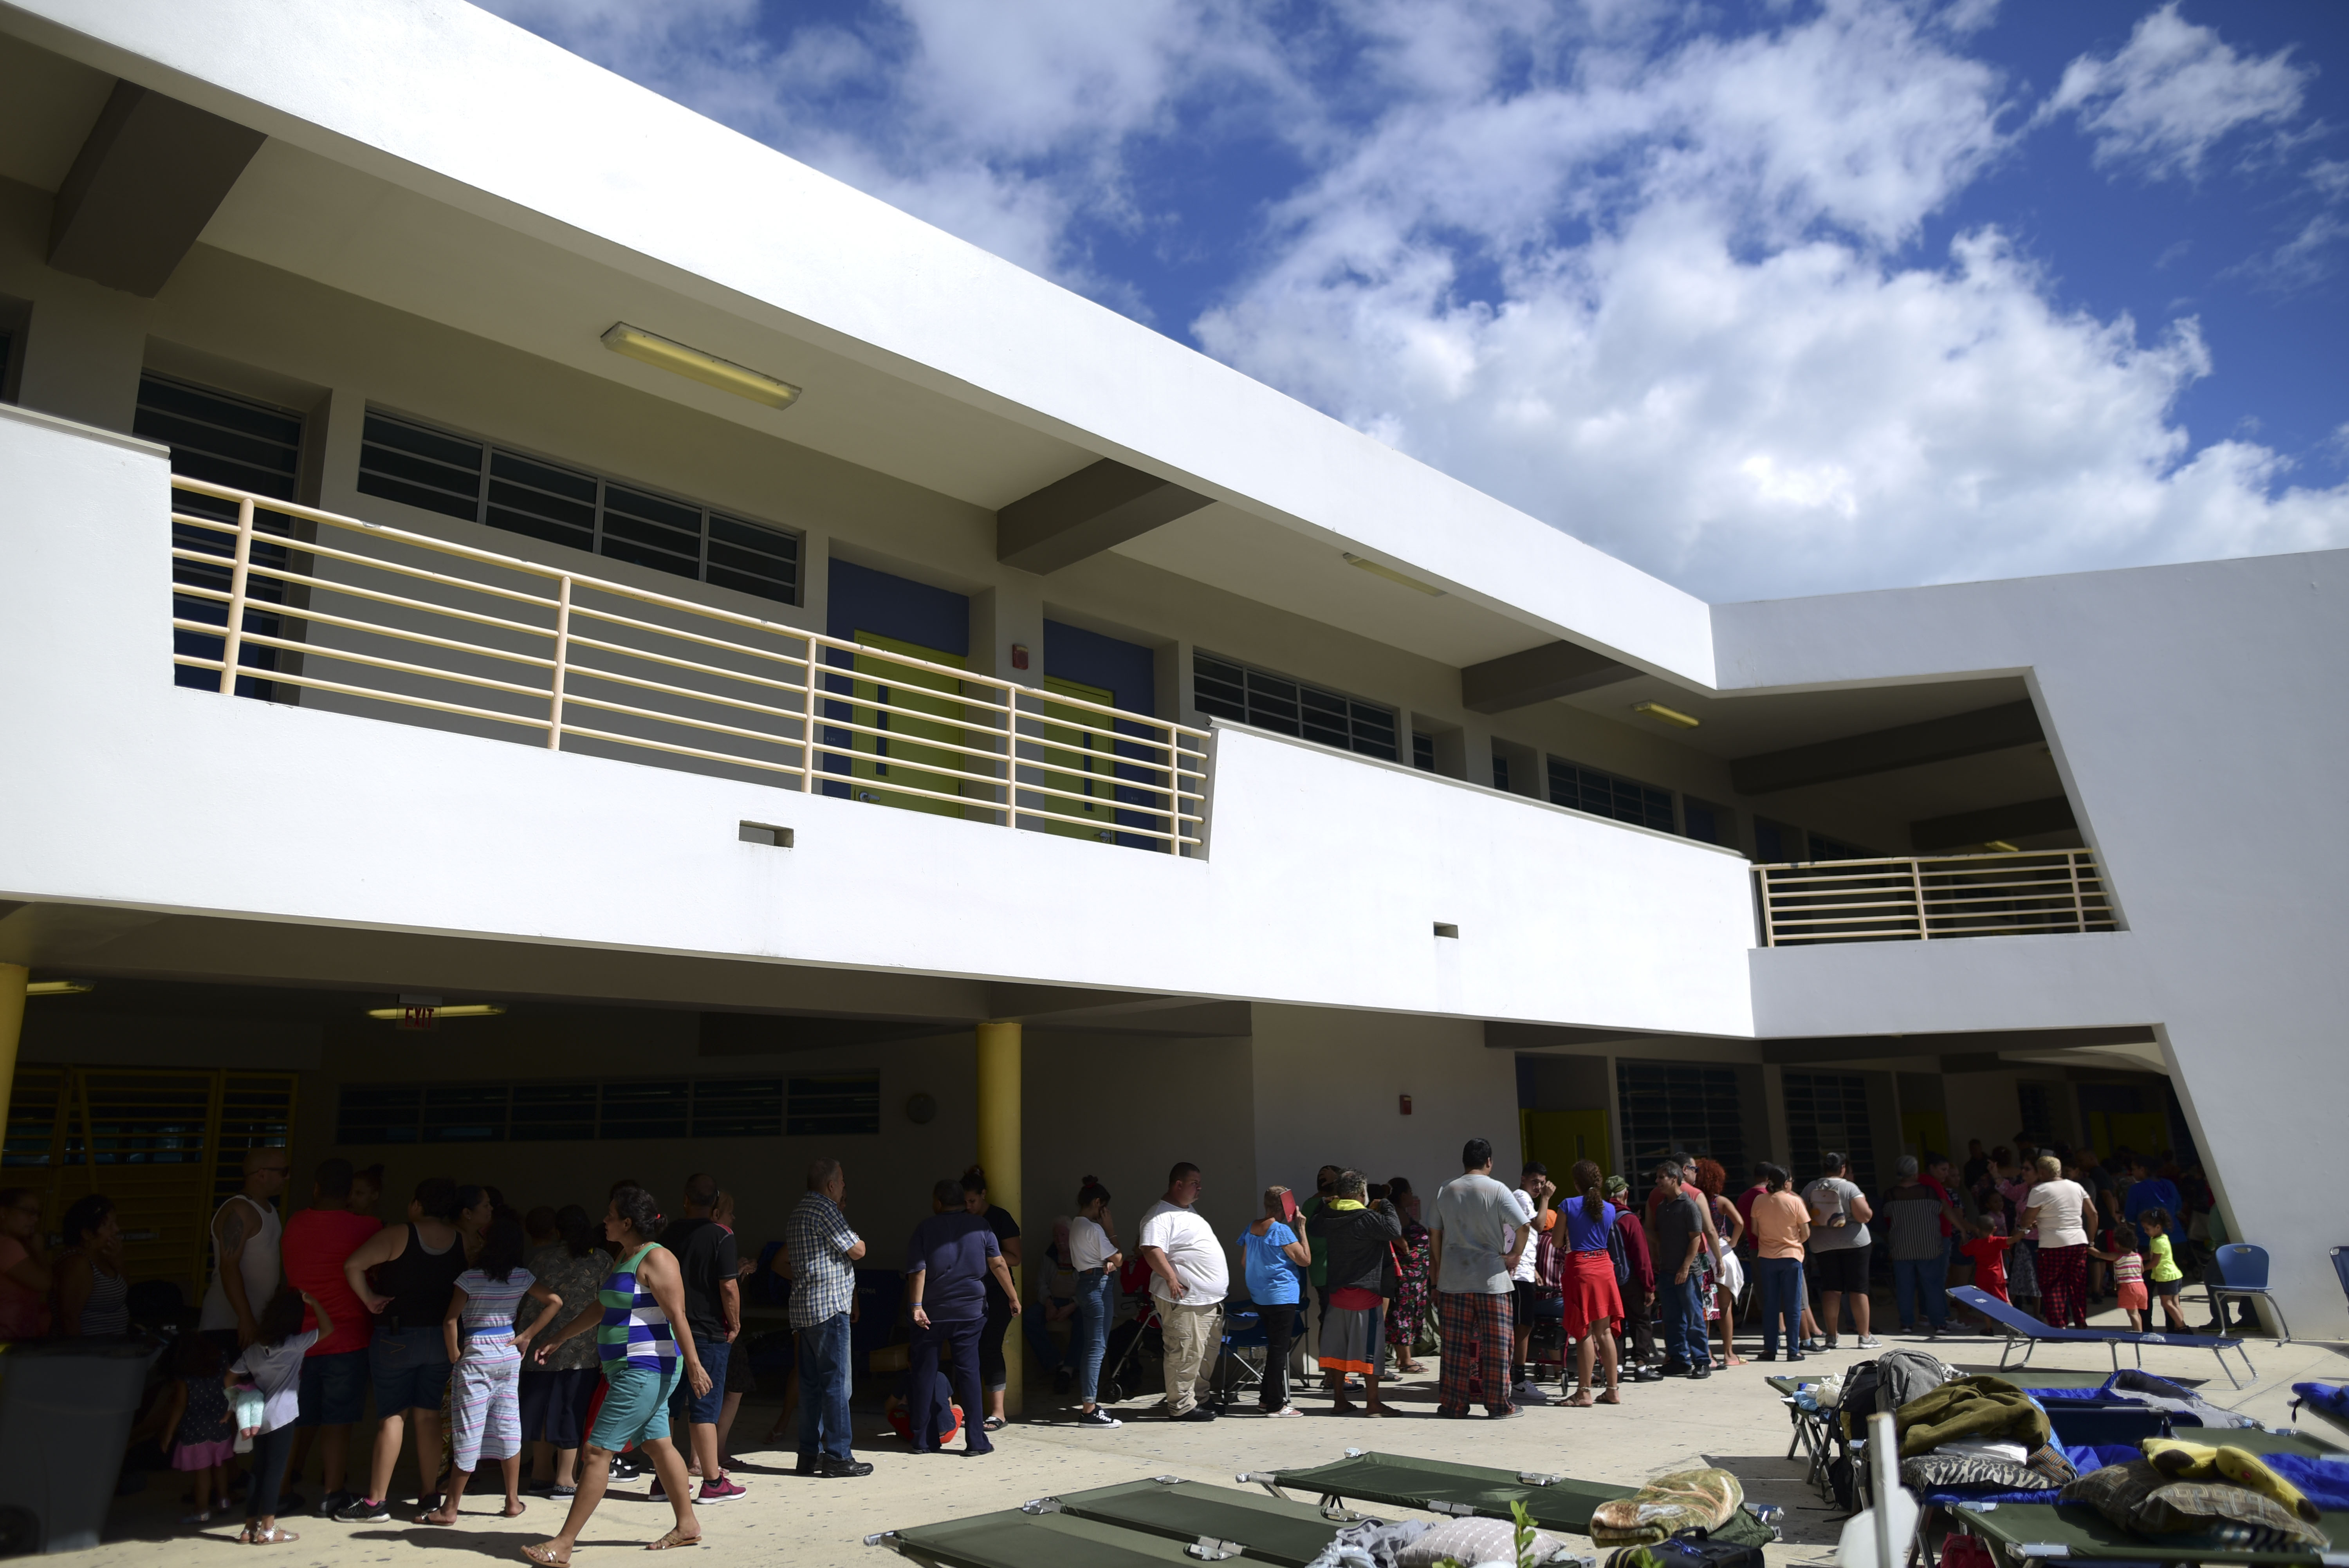 People whose homes are unsafe to enter after the previous day's magnitude 6.4 earthquake line up for lunch in an outdoor area of the Bernardino Cordero Bernard High School, which is being used as a shelter despite no electricity in Ponce, Puerto Rico on Jan. 8, 2020.